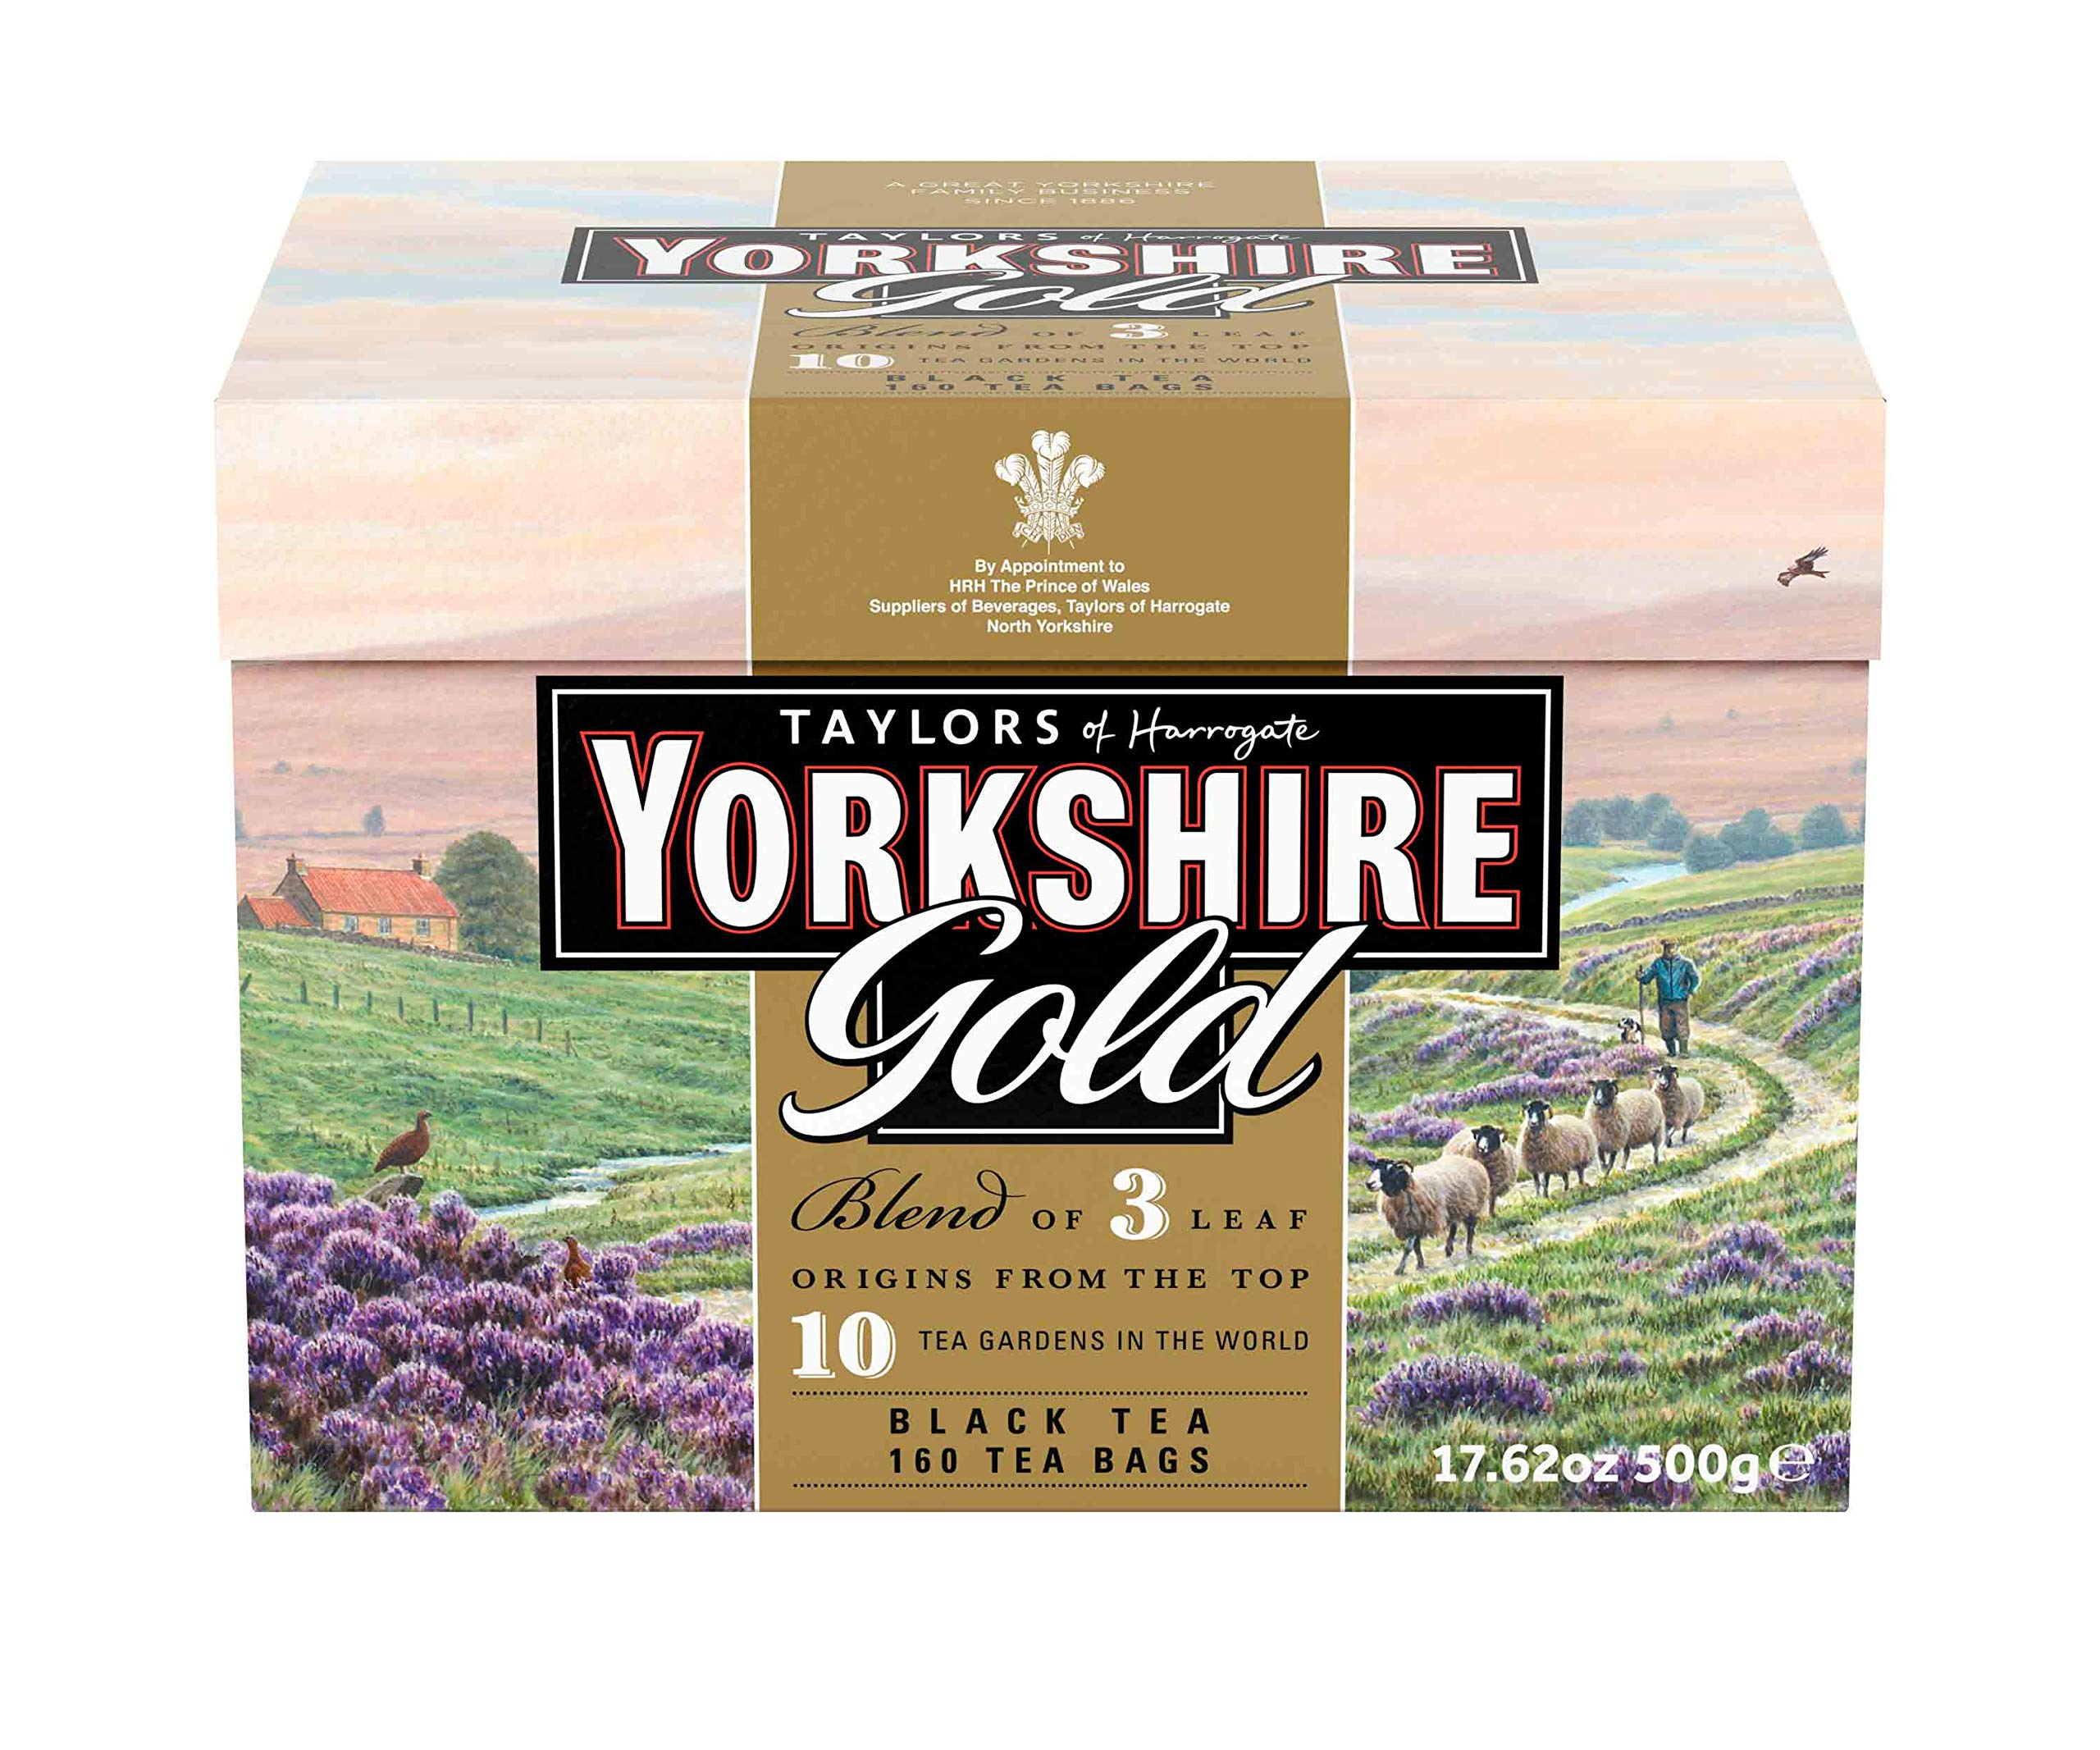 Taylors of Harrogate Yorkshire Gold, 160 Count, Pack of 6 by Yorkshire Tea